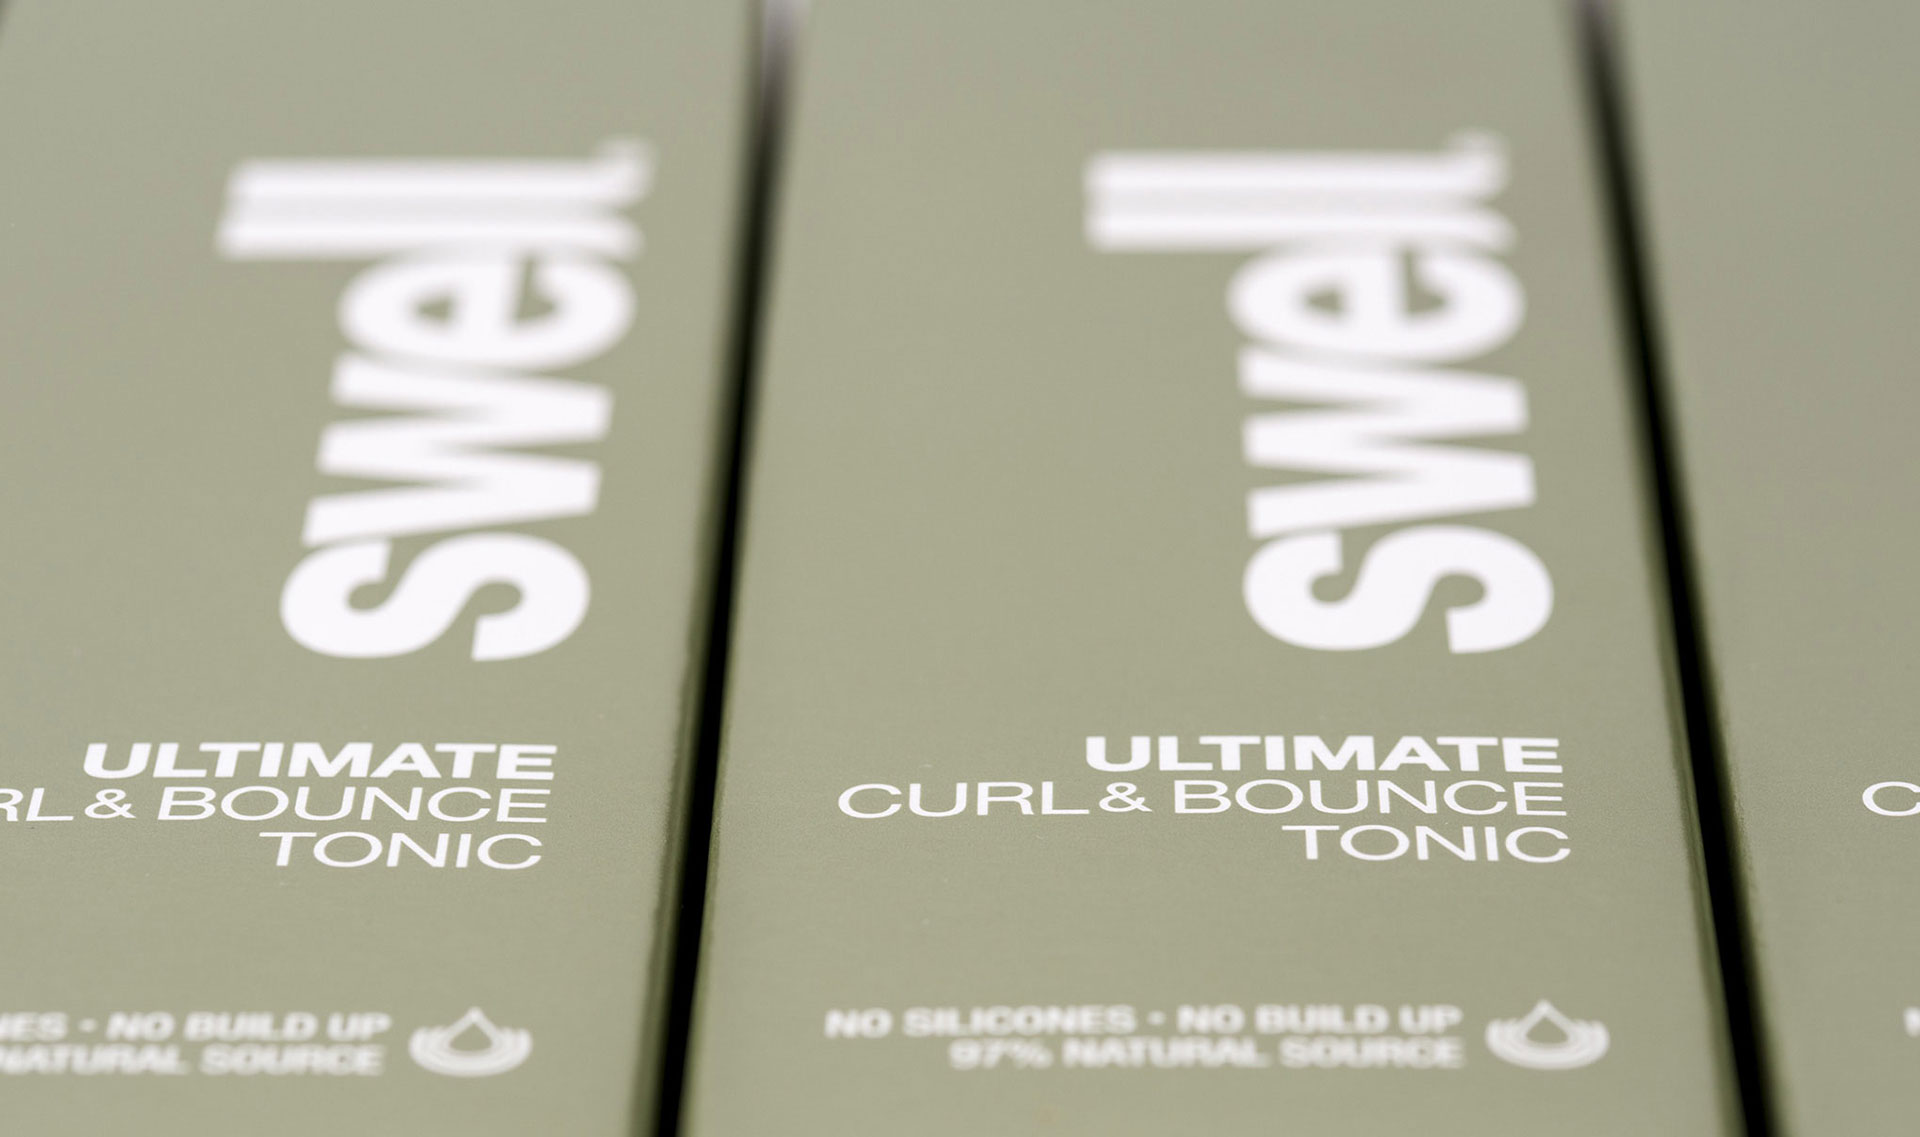 Haircare package design for Swell Hair. Curl & Bounce Tonic carton. Packaging design company - Flipflop Design.